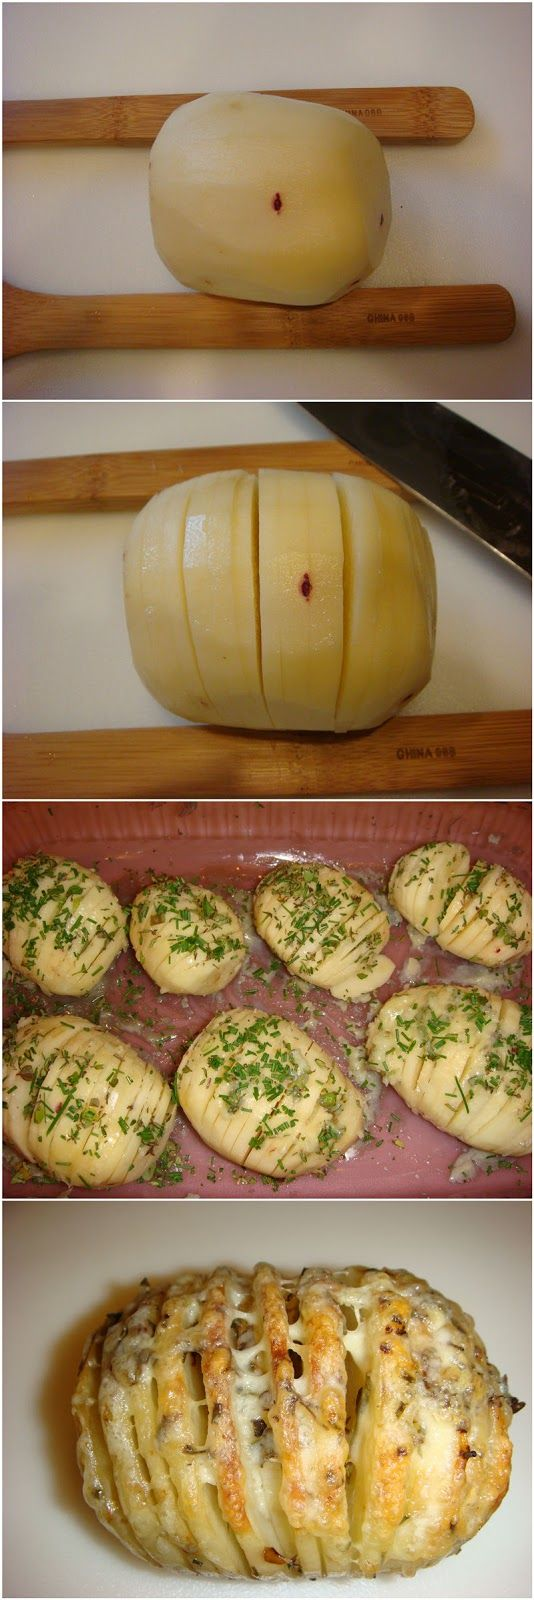 cookglee recipe pictures: Sliced Baked Potatoes with Herbs and Cheese